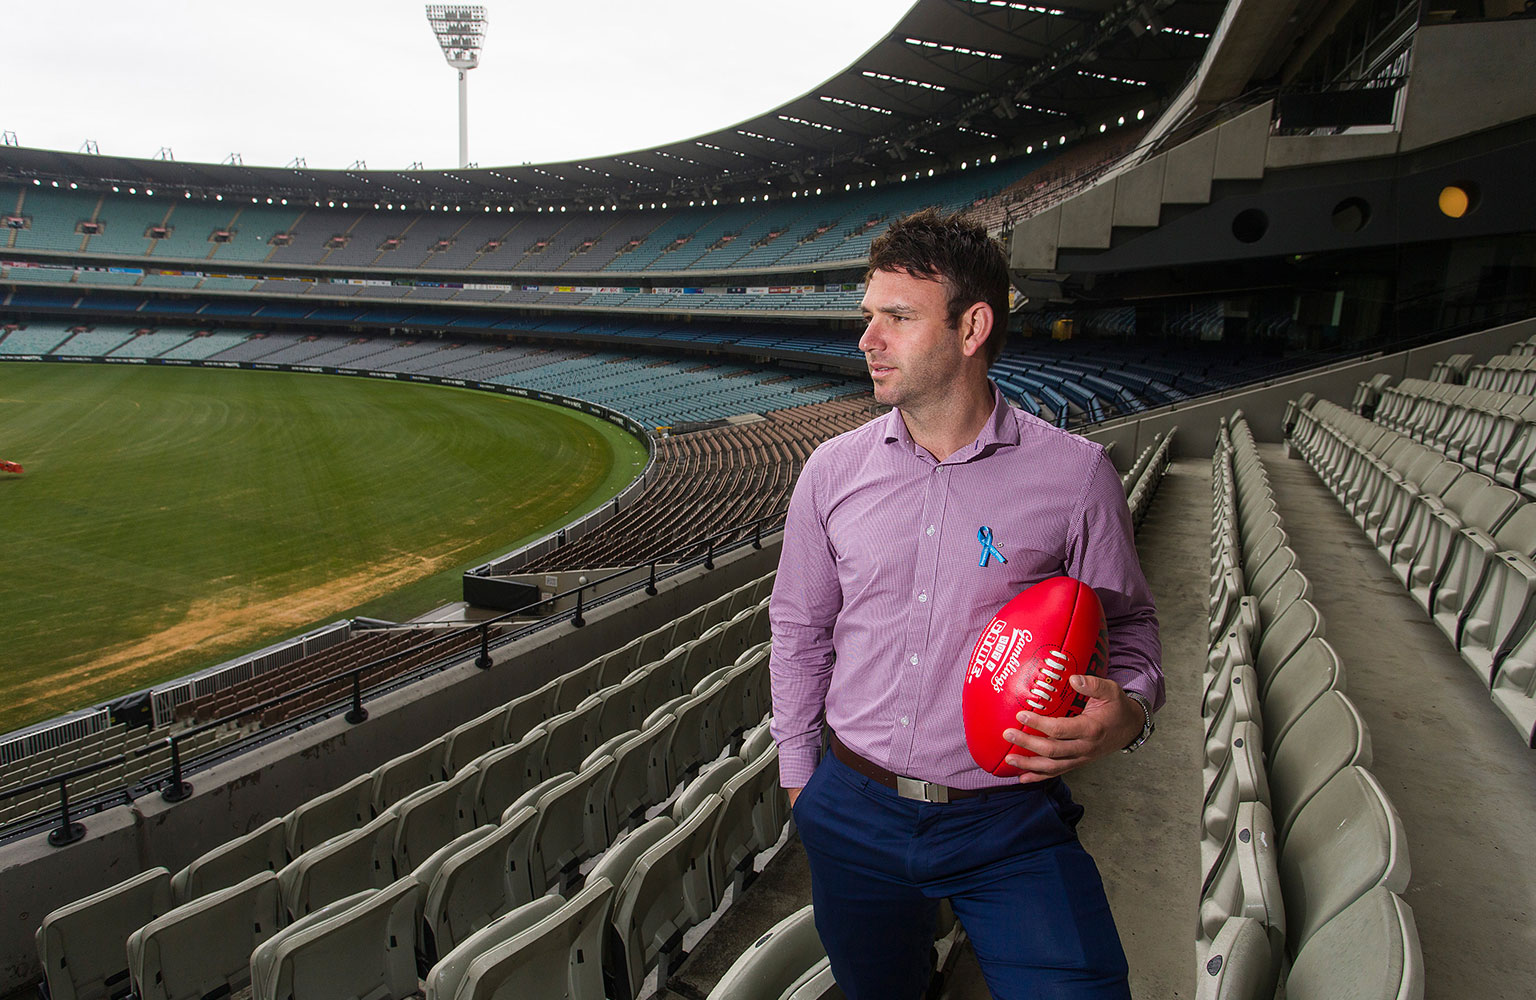 Brent Guerra holding a football in the stands of the MCG